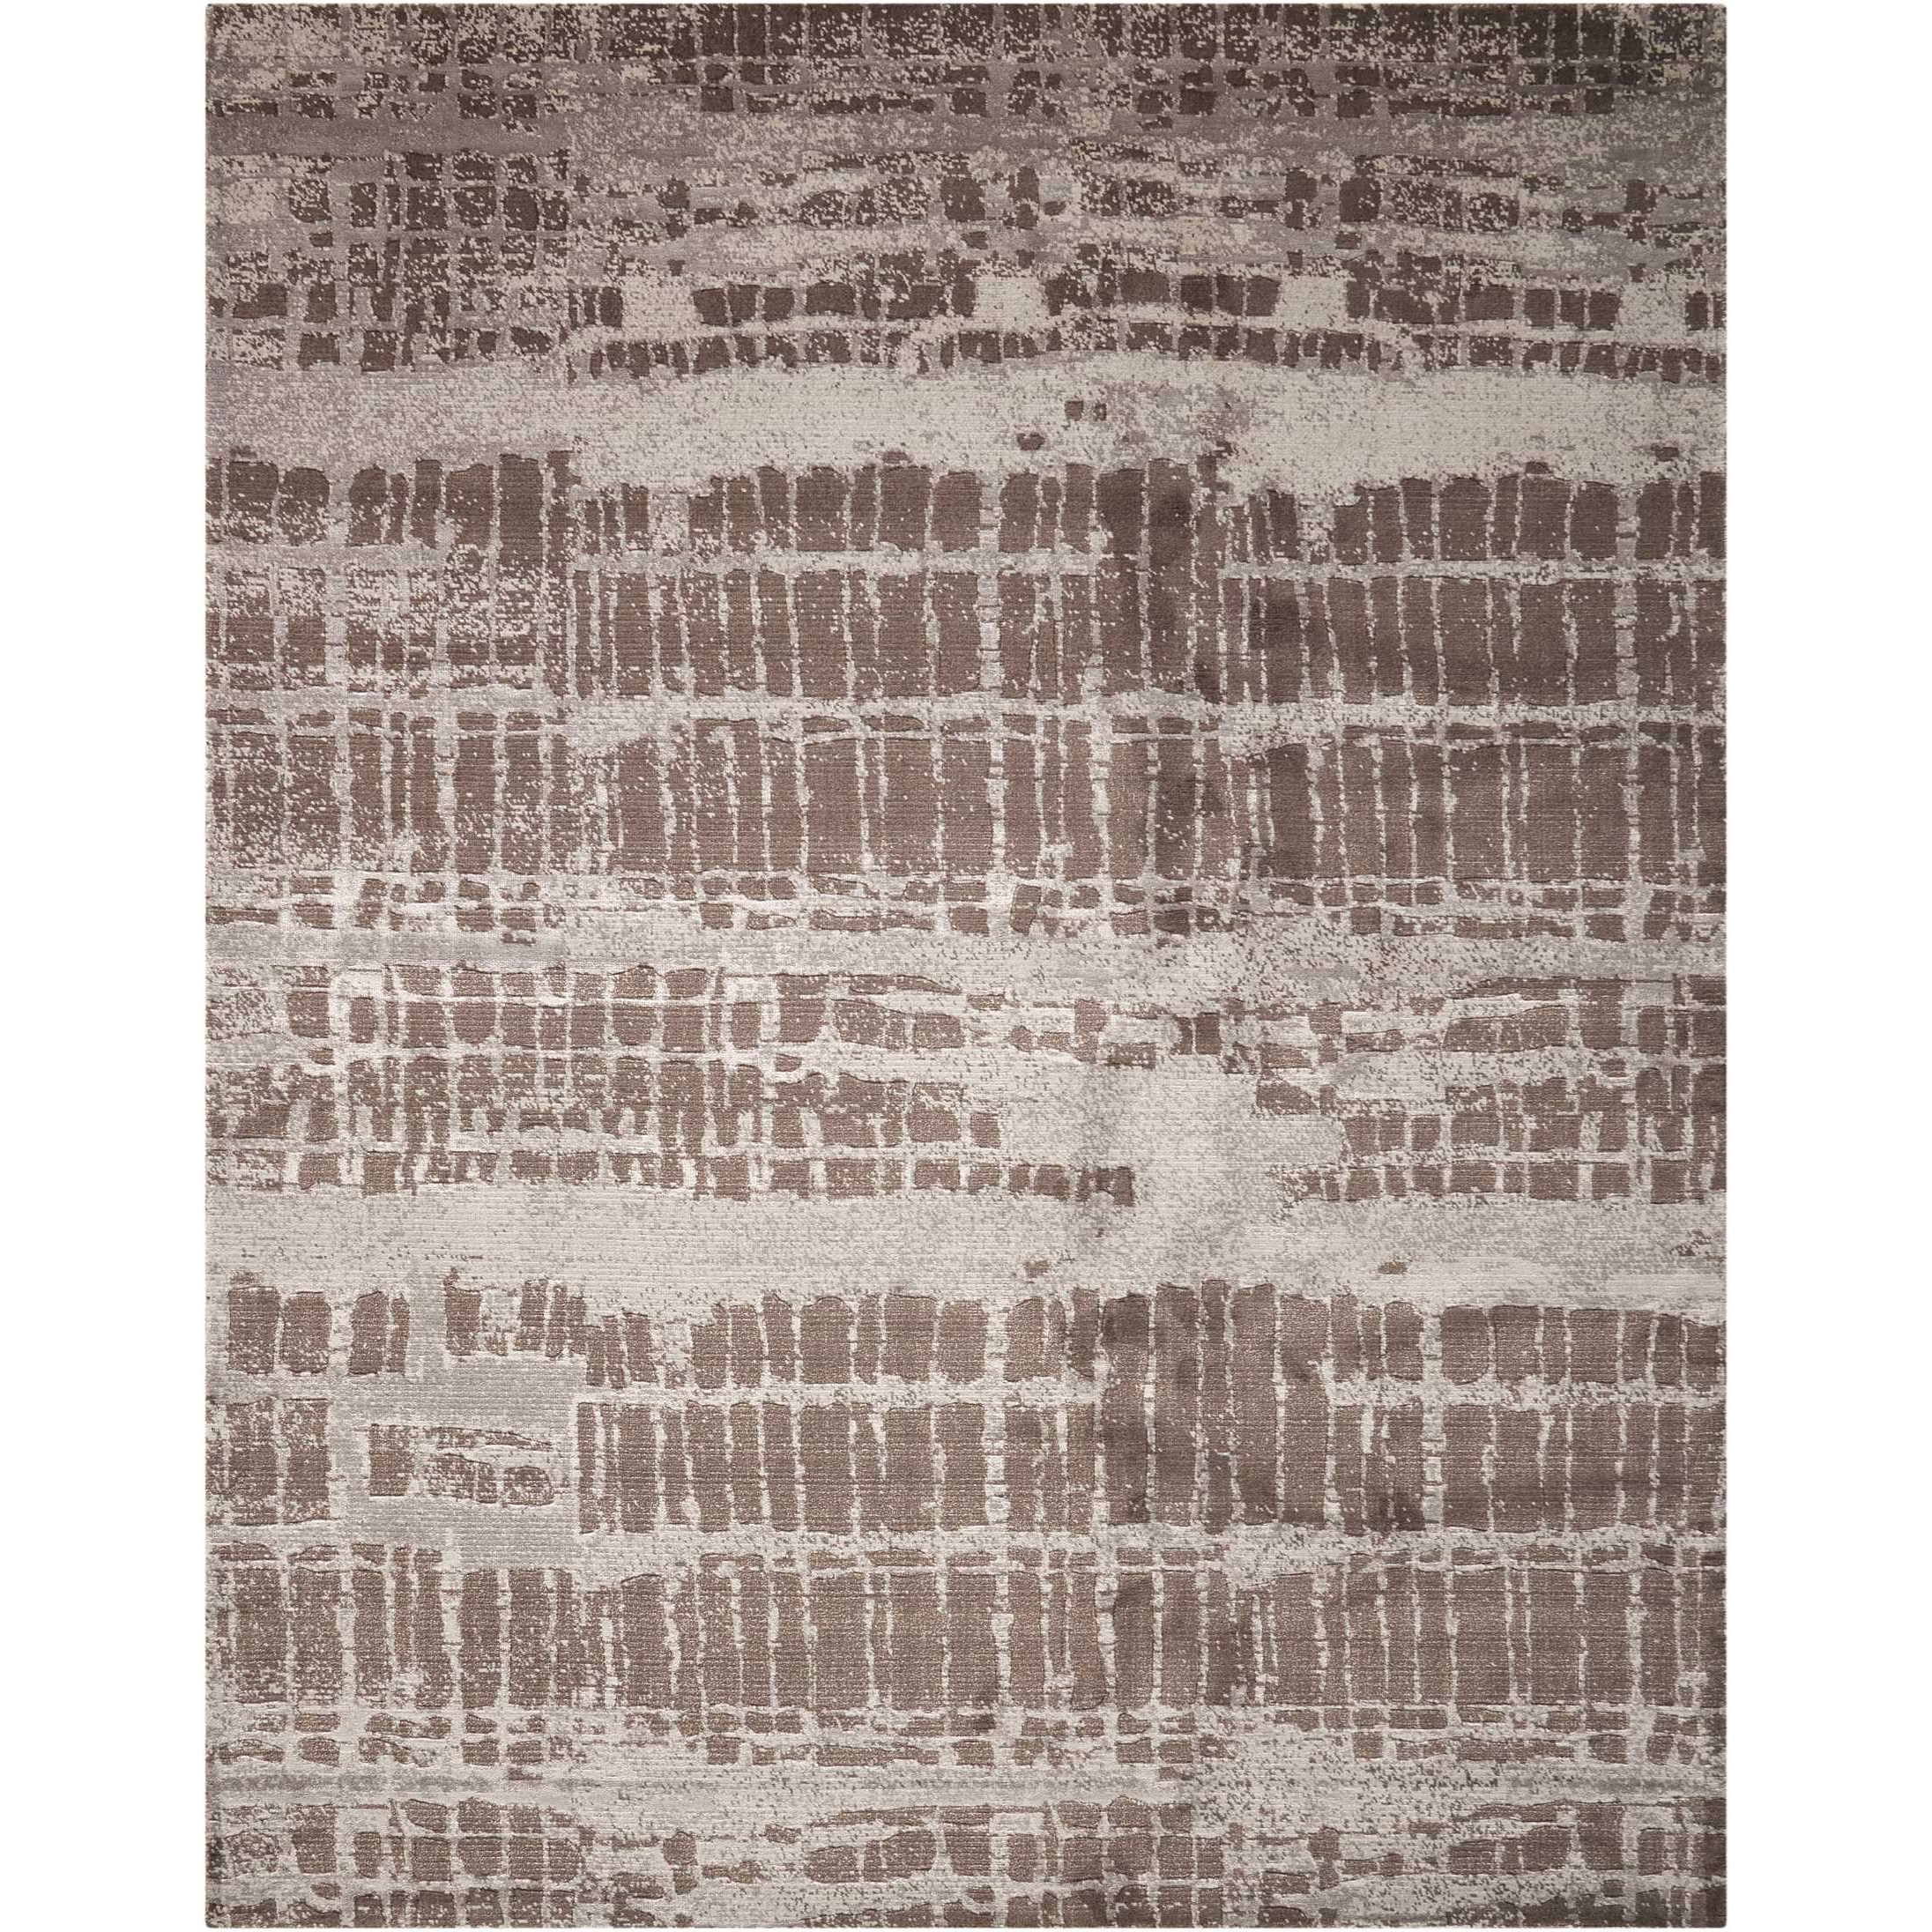 Twilight 12'x15' Oversized Rug by Nourison at Home Collections Furniture